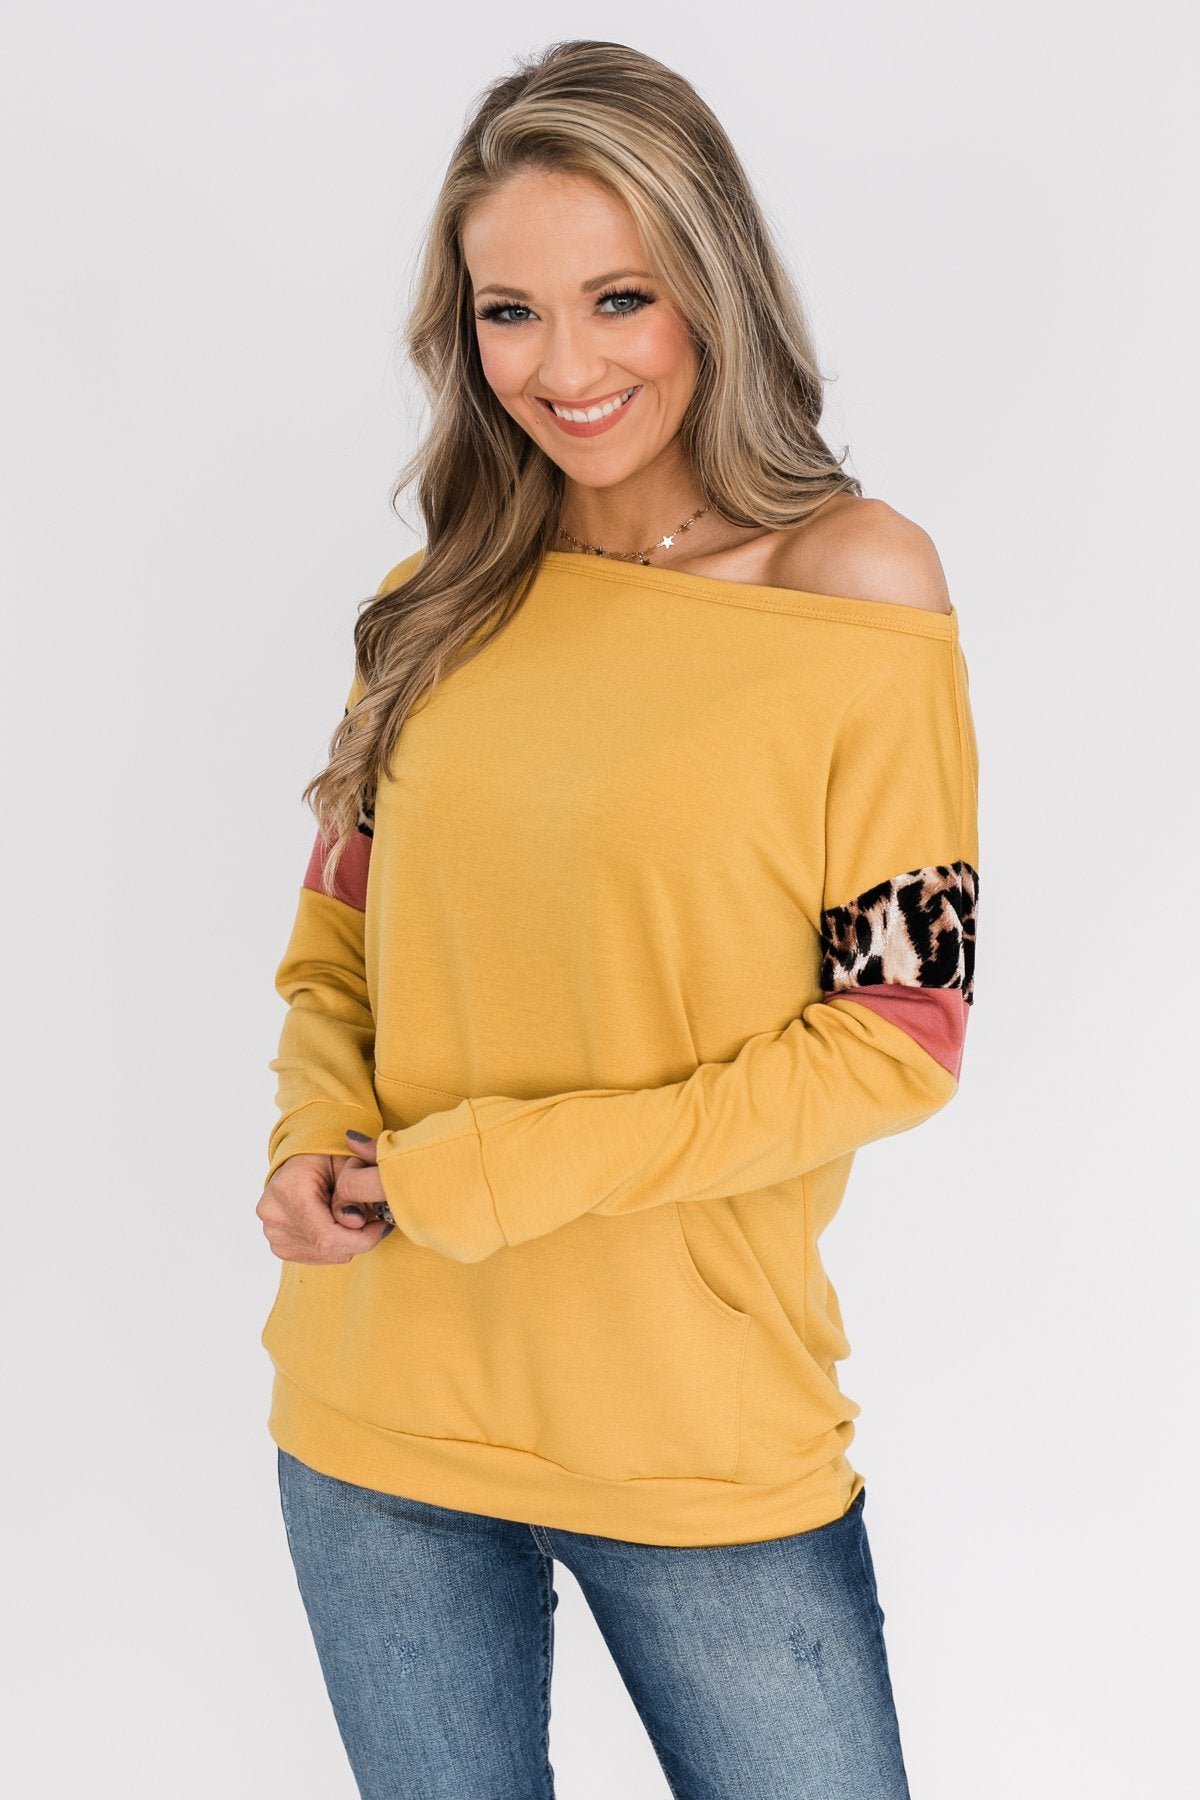 If I Were You Pullover Top- Mustard